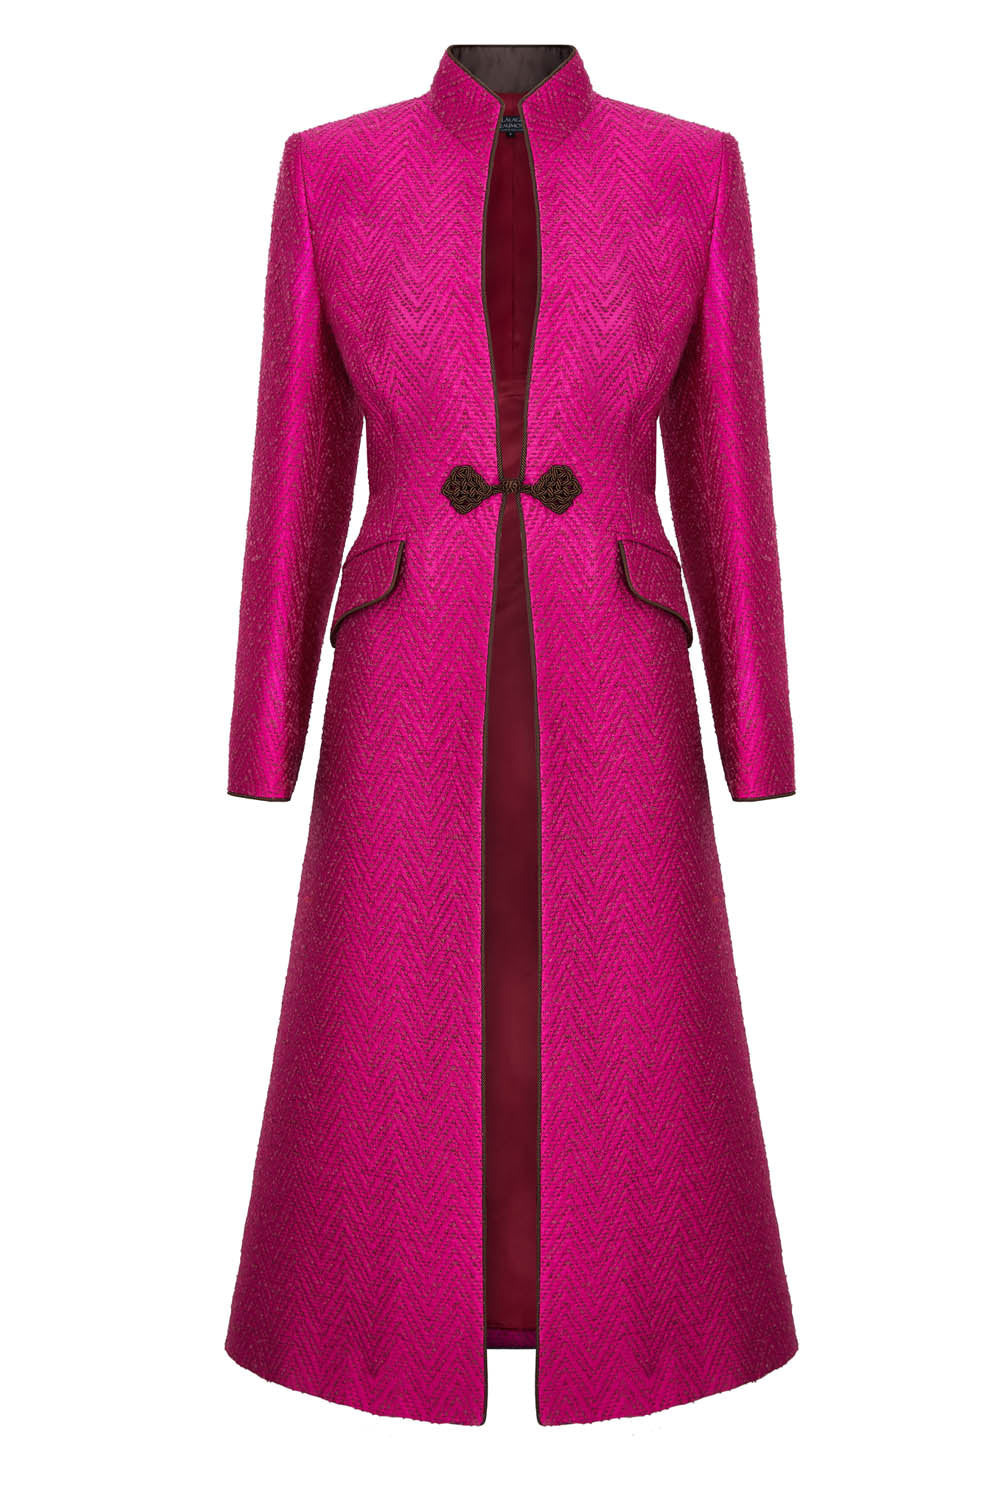 Silk Dress Coat in Fuchsia and Mocha Jacquard - Vanessa